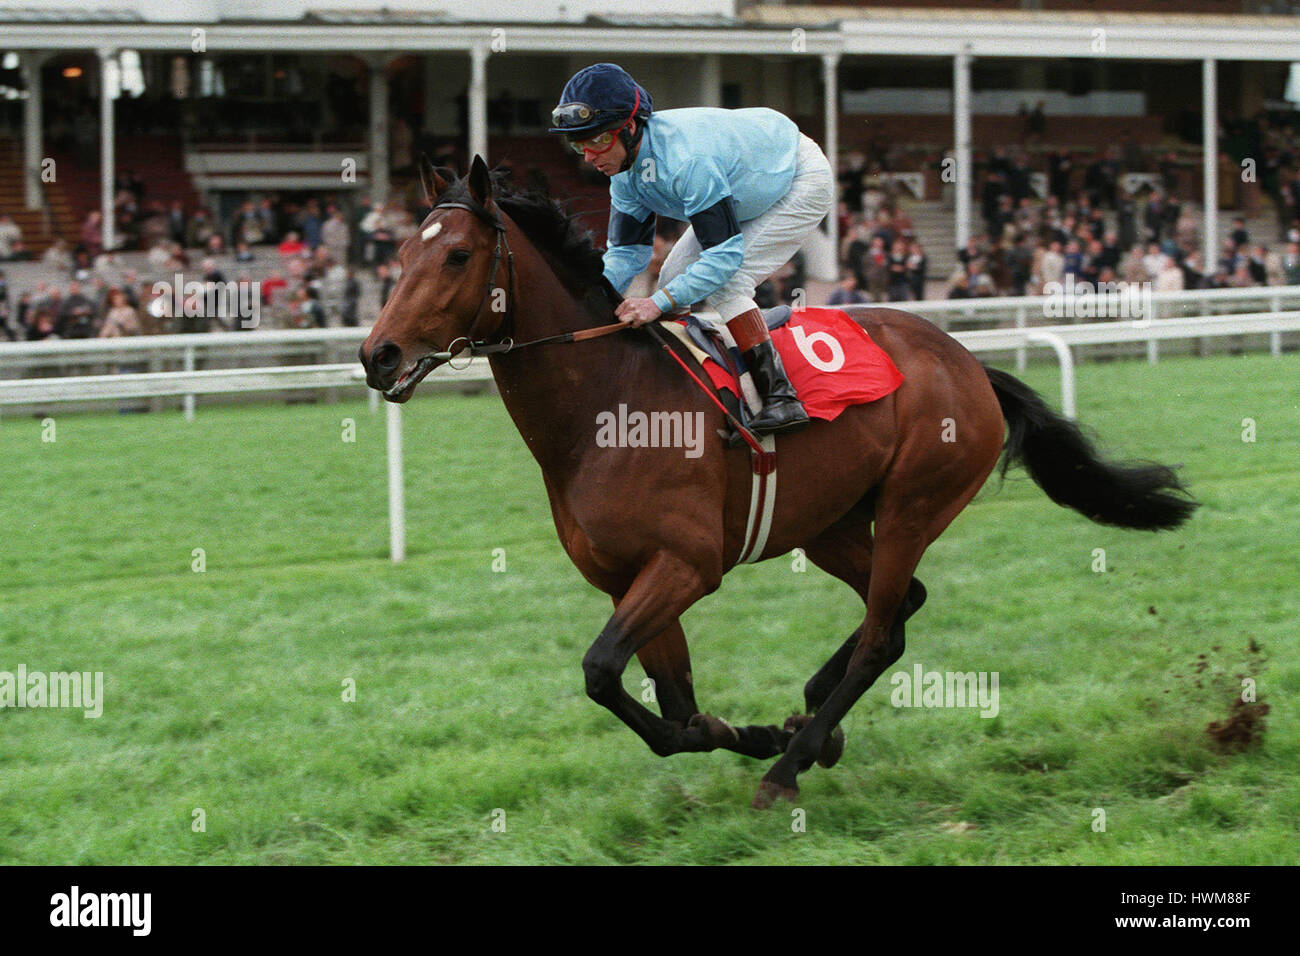 TRIDENT RIDDEN BY J.REID 17 April 1998 - Stock Image